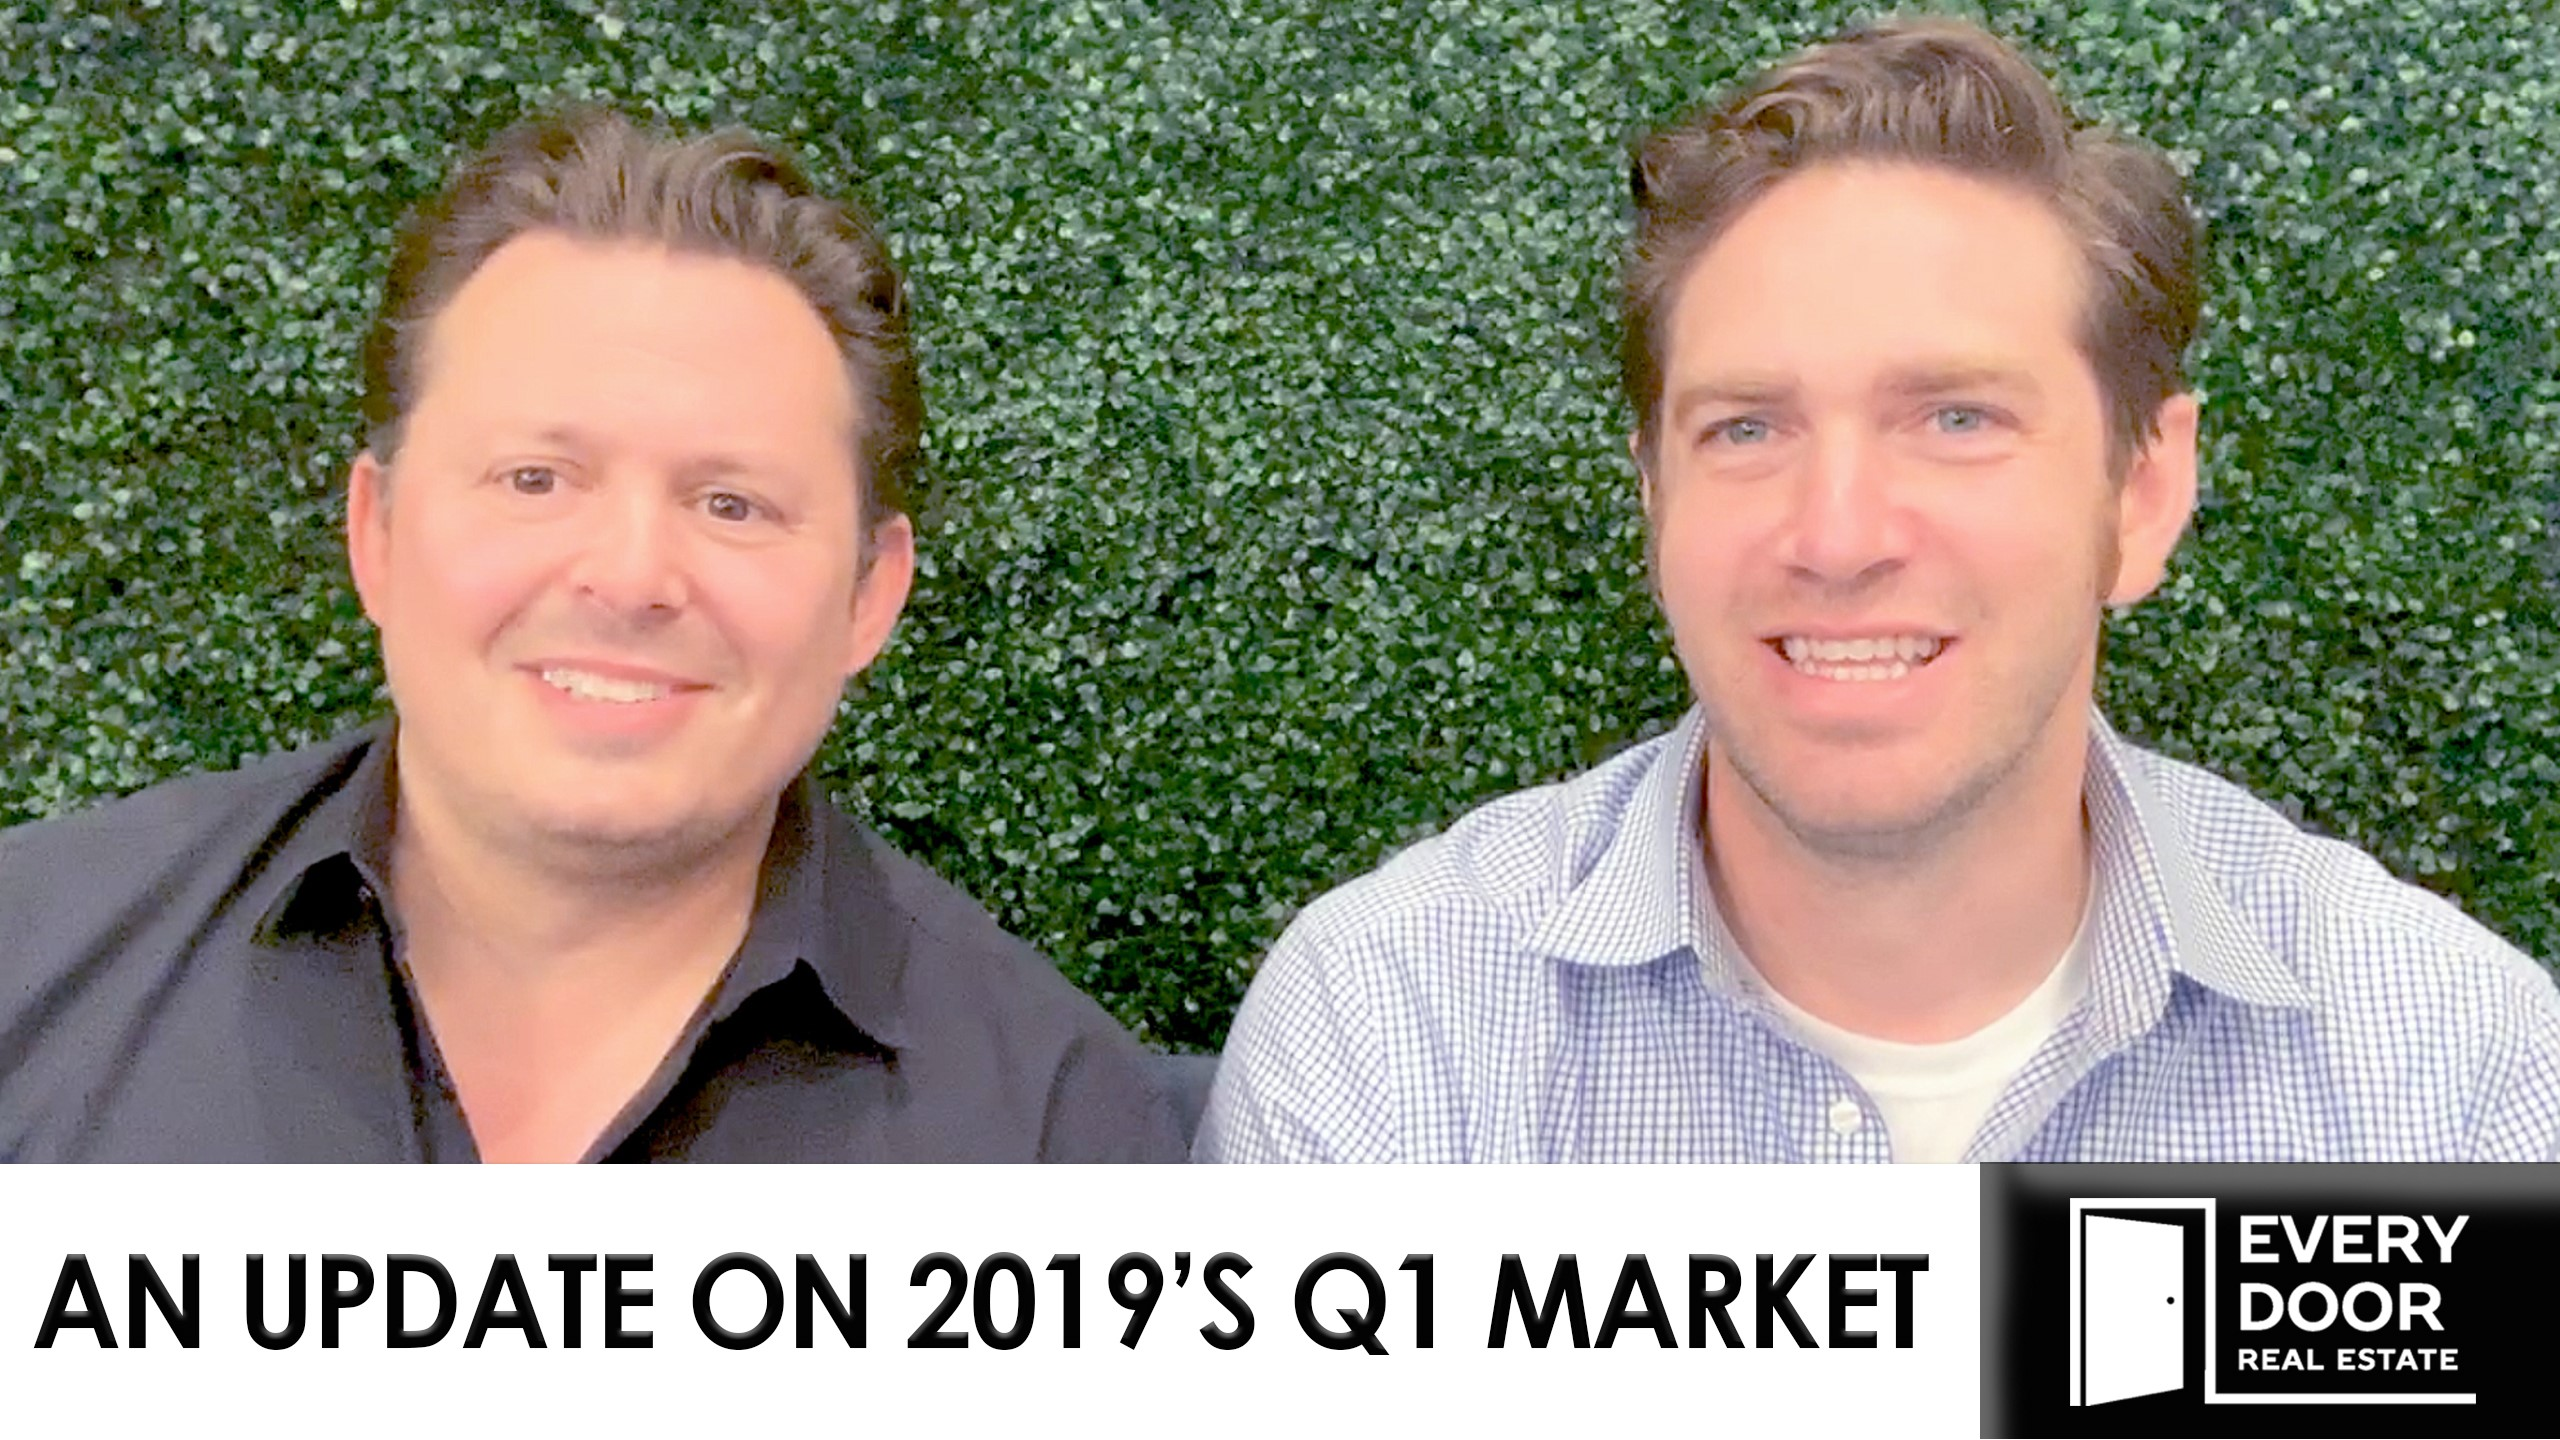 An Update on 2019's Q1 Market